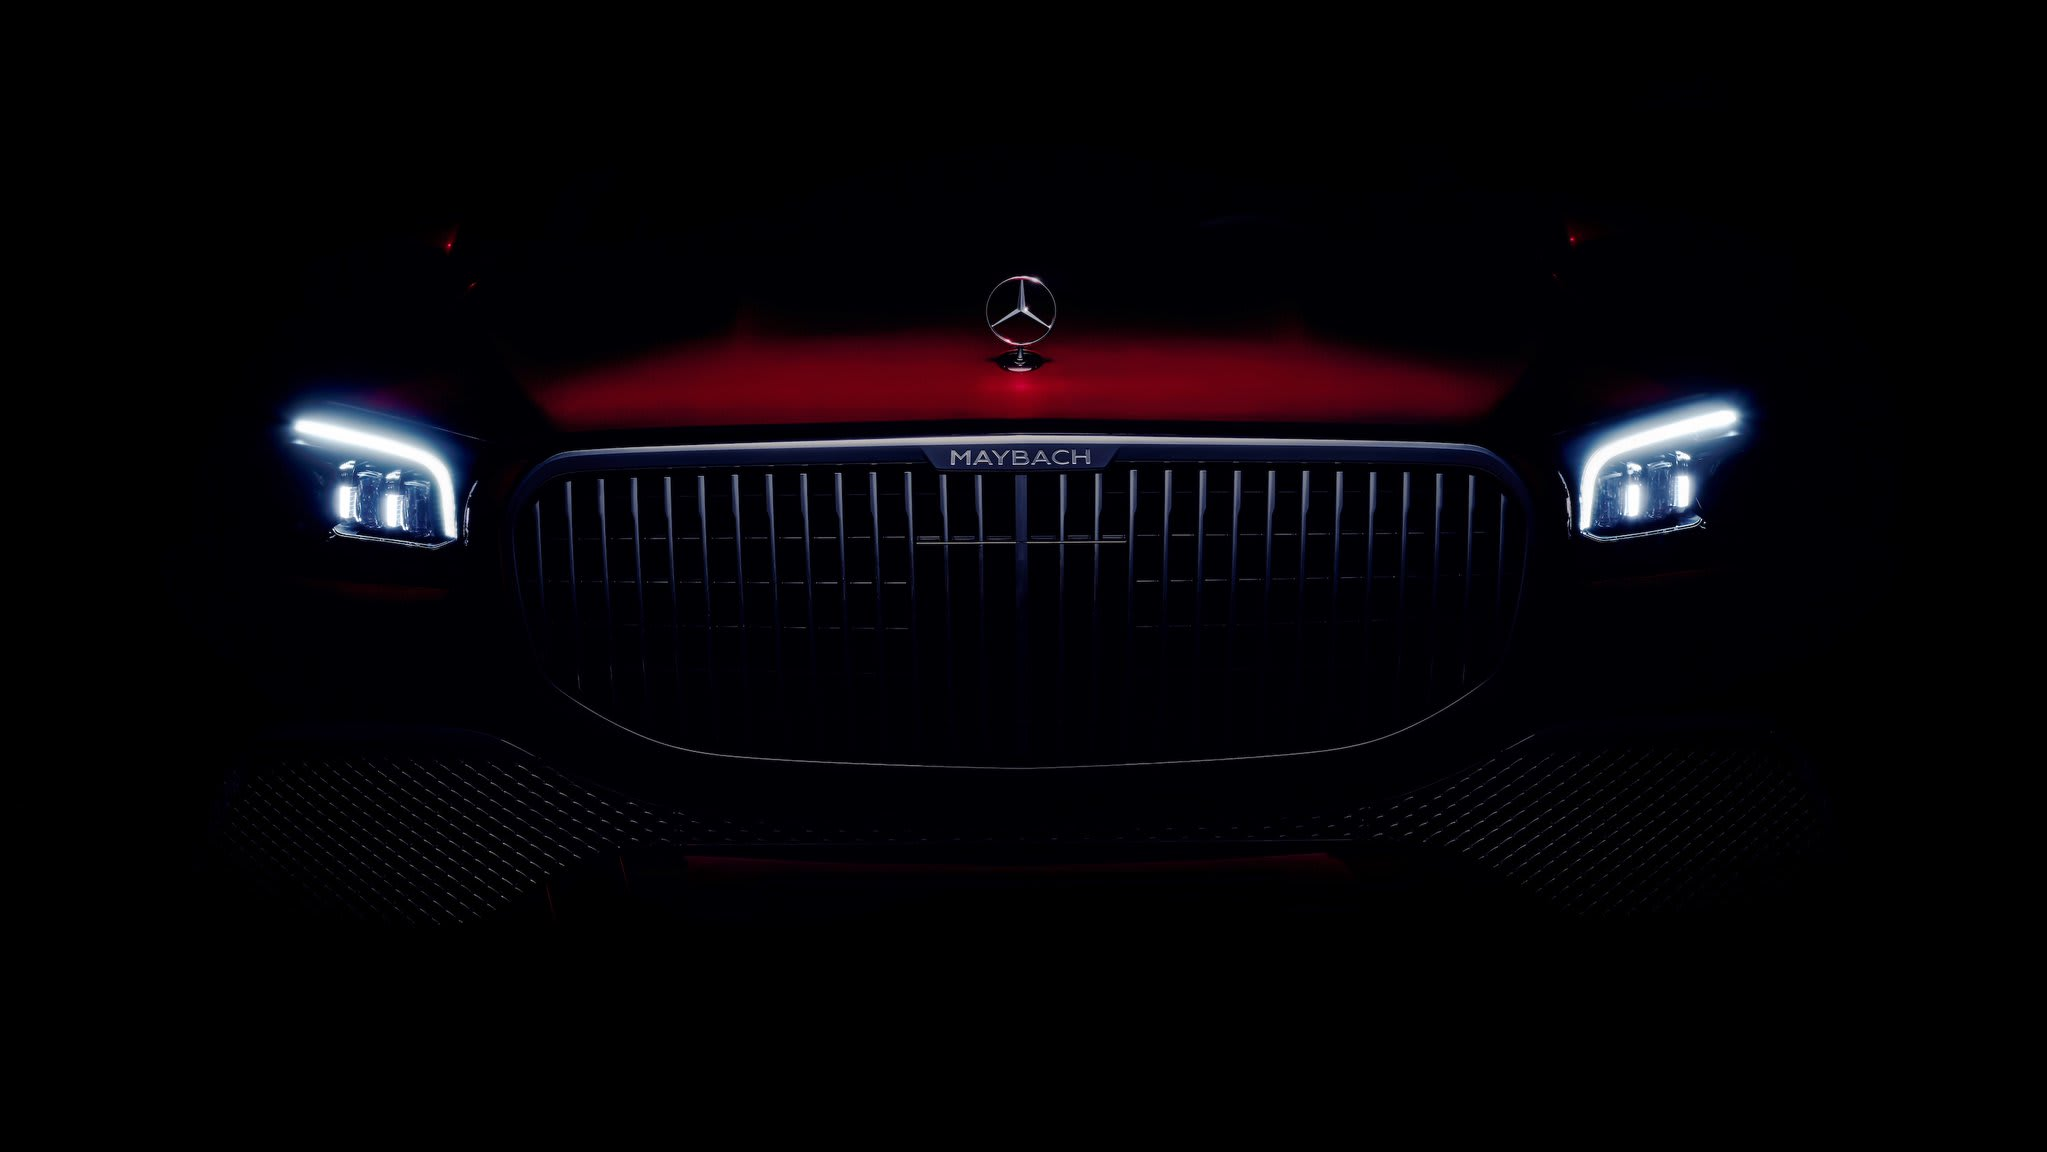 Mercedes Maybach Gls Teased Ahead Of Guangzhou Debut Caradvice